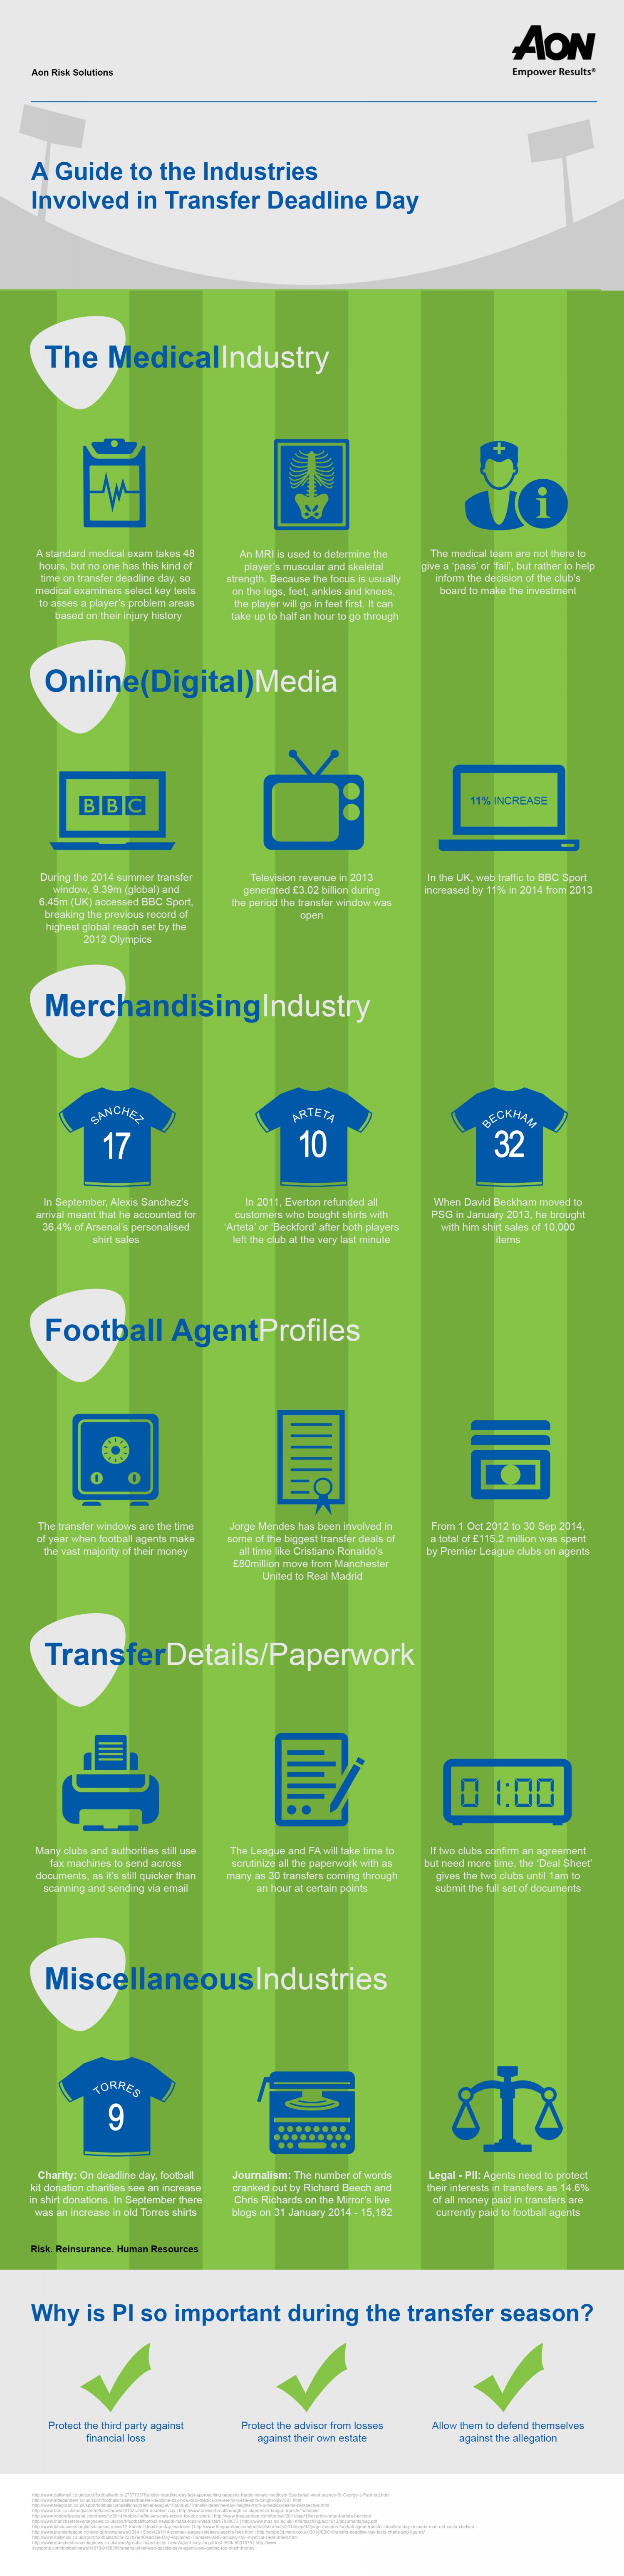 Aon - a-guide-to-the-industries-involved-in-transfer-deadline-day